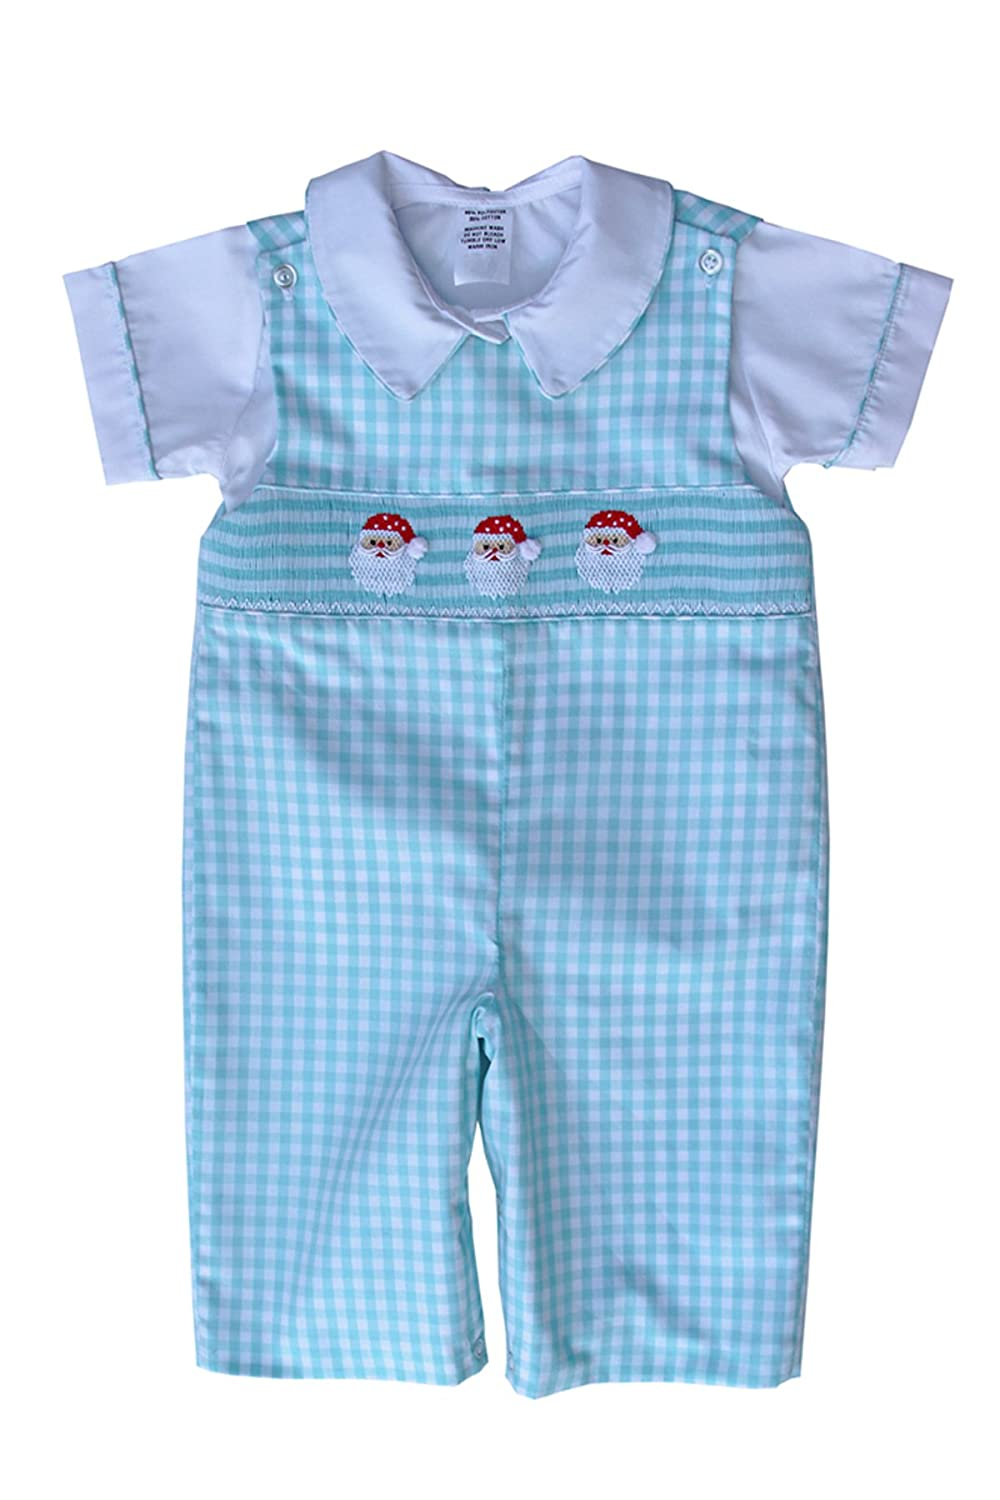 Boys Hand Smocked Santa Christmas Longall with Shirt Overalls